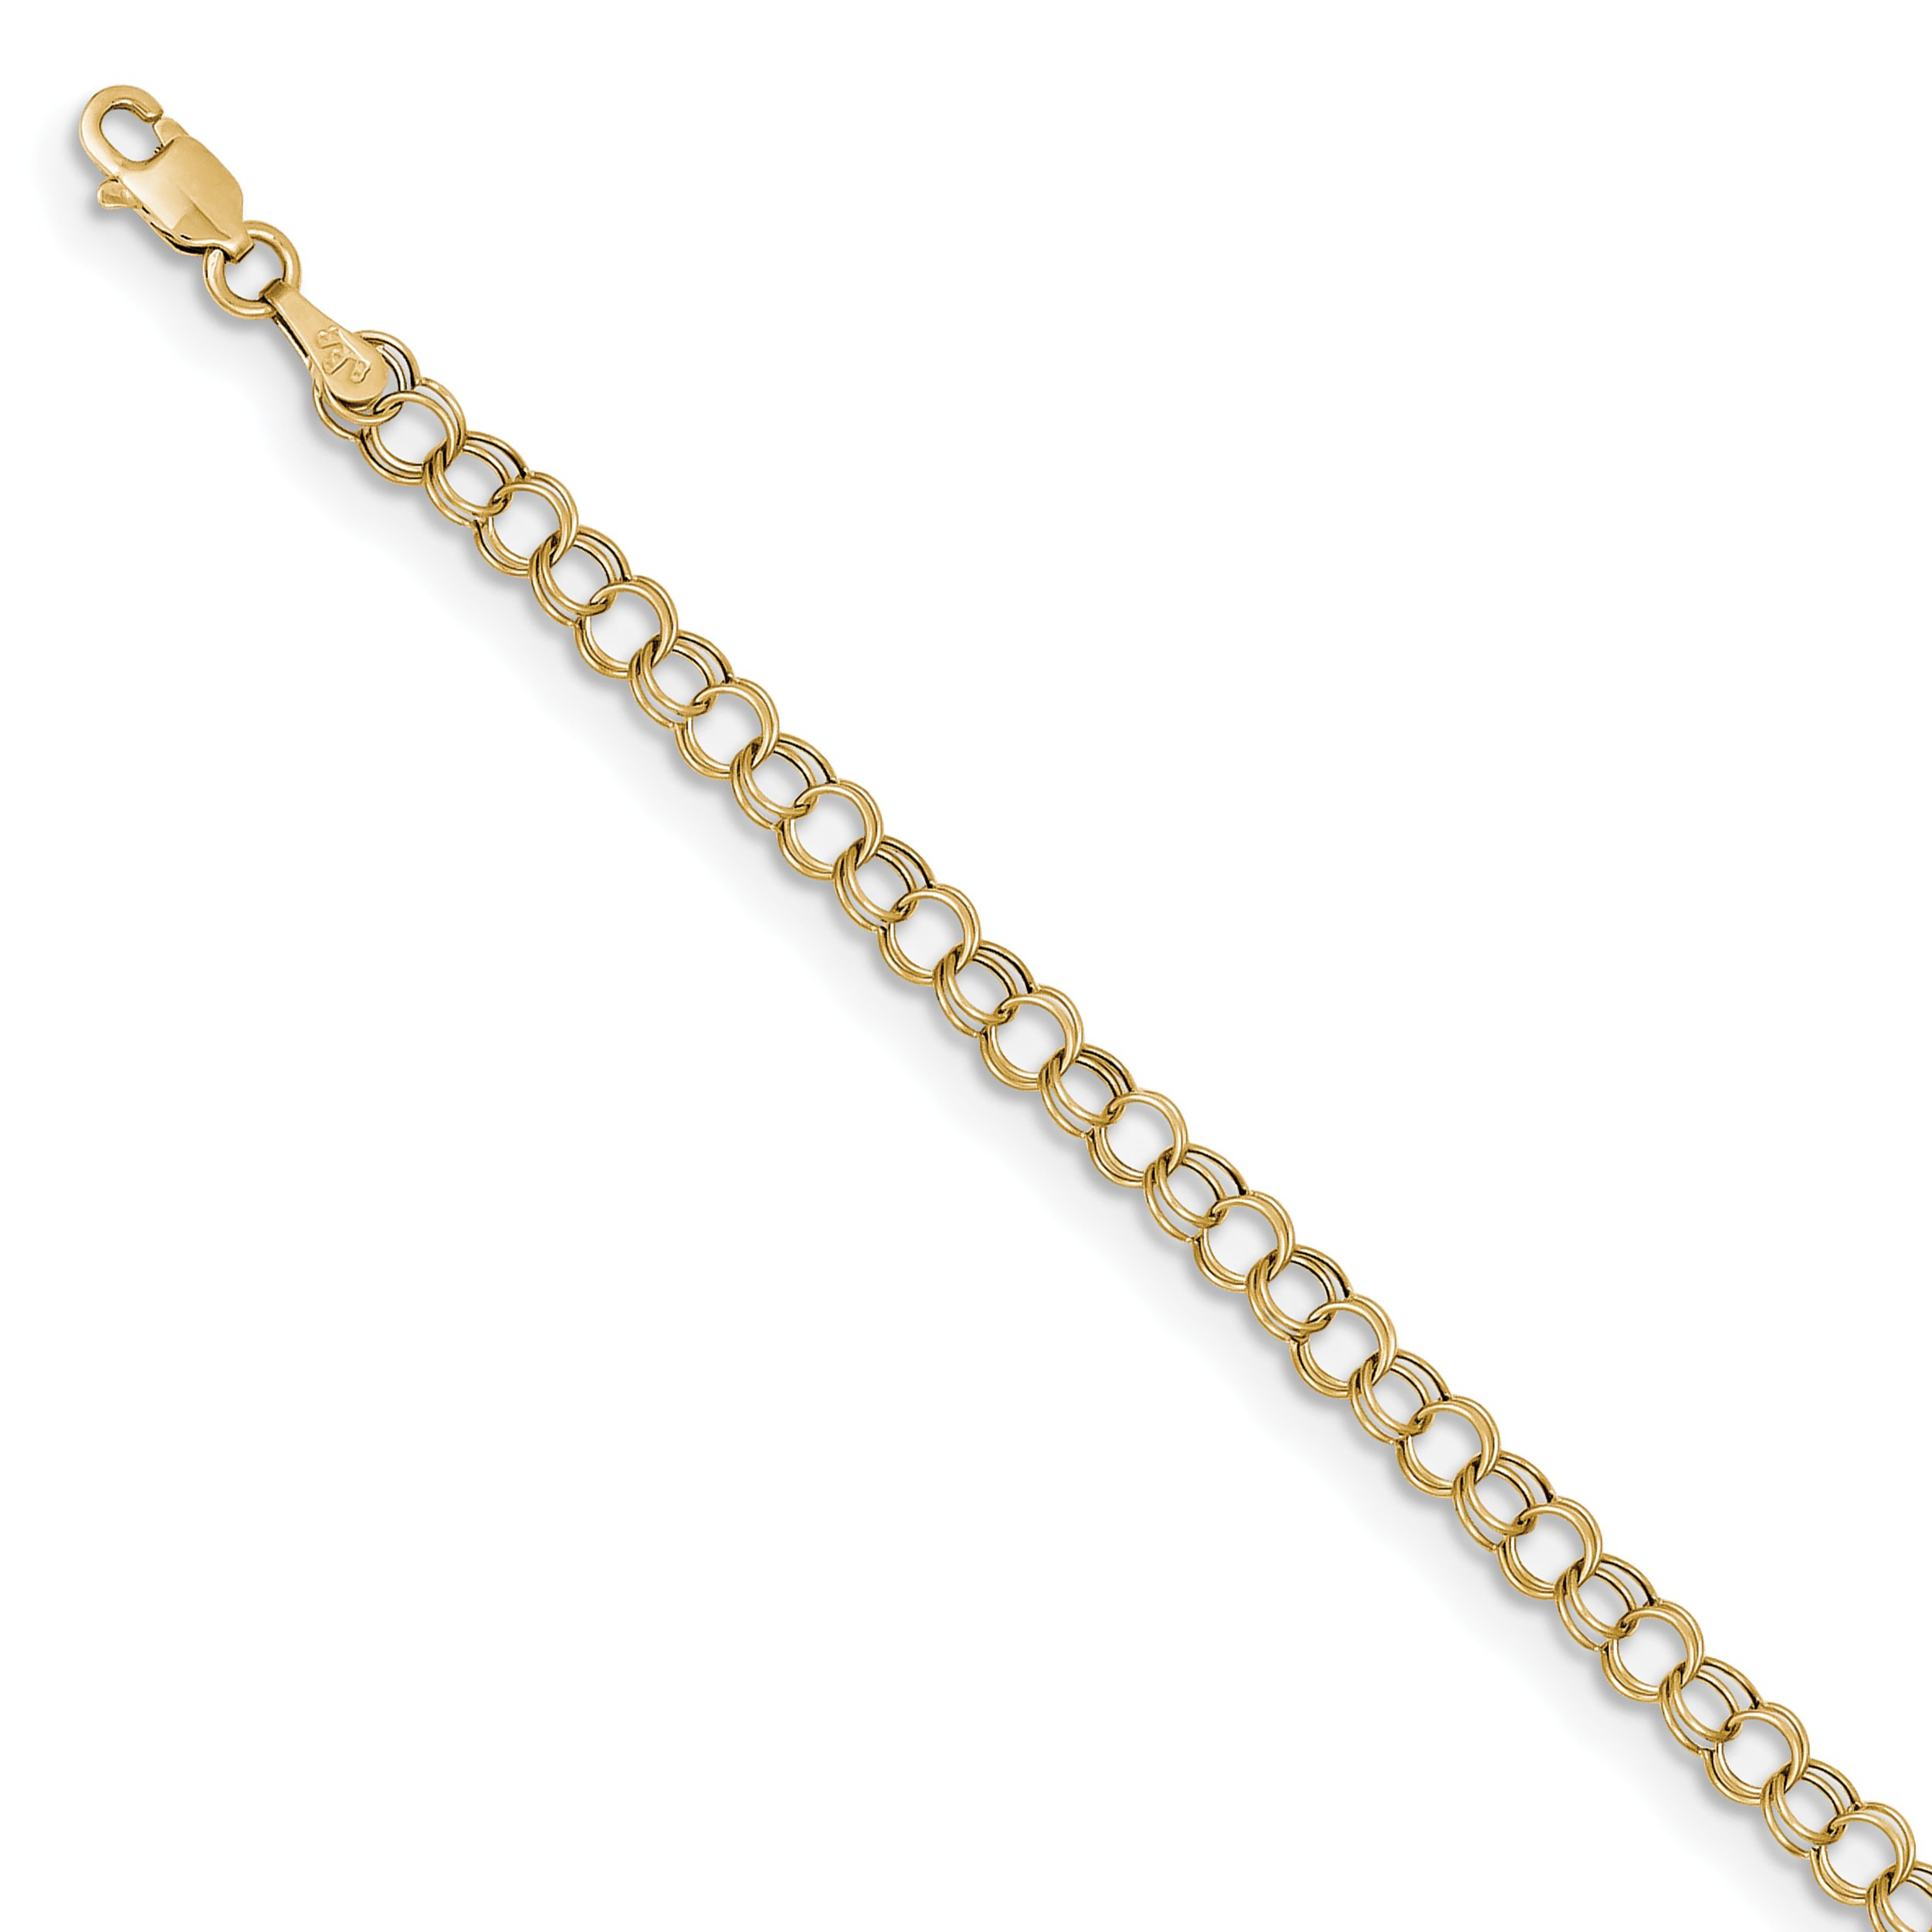 ICE CARATS 10k Yellow Gold Double Link Charm Bracelet 8 Inch Fine Jewelry Gift Set For Women Heart